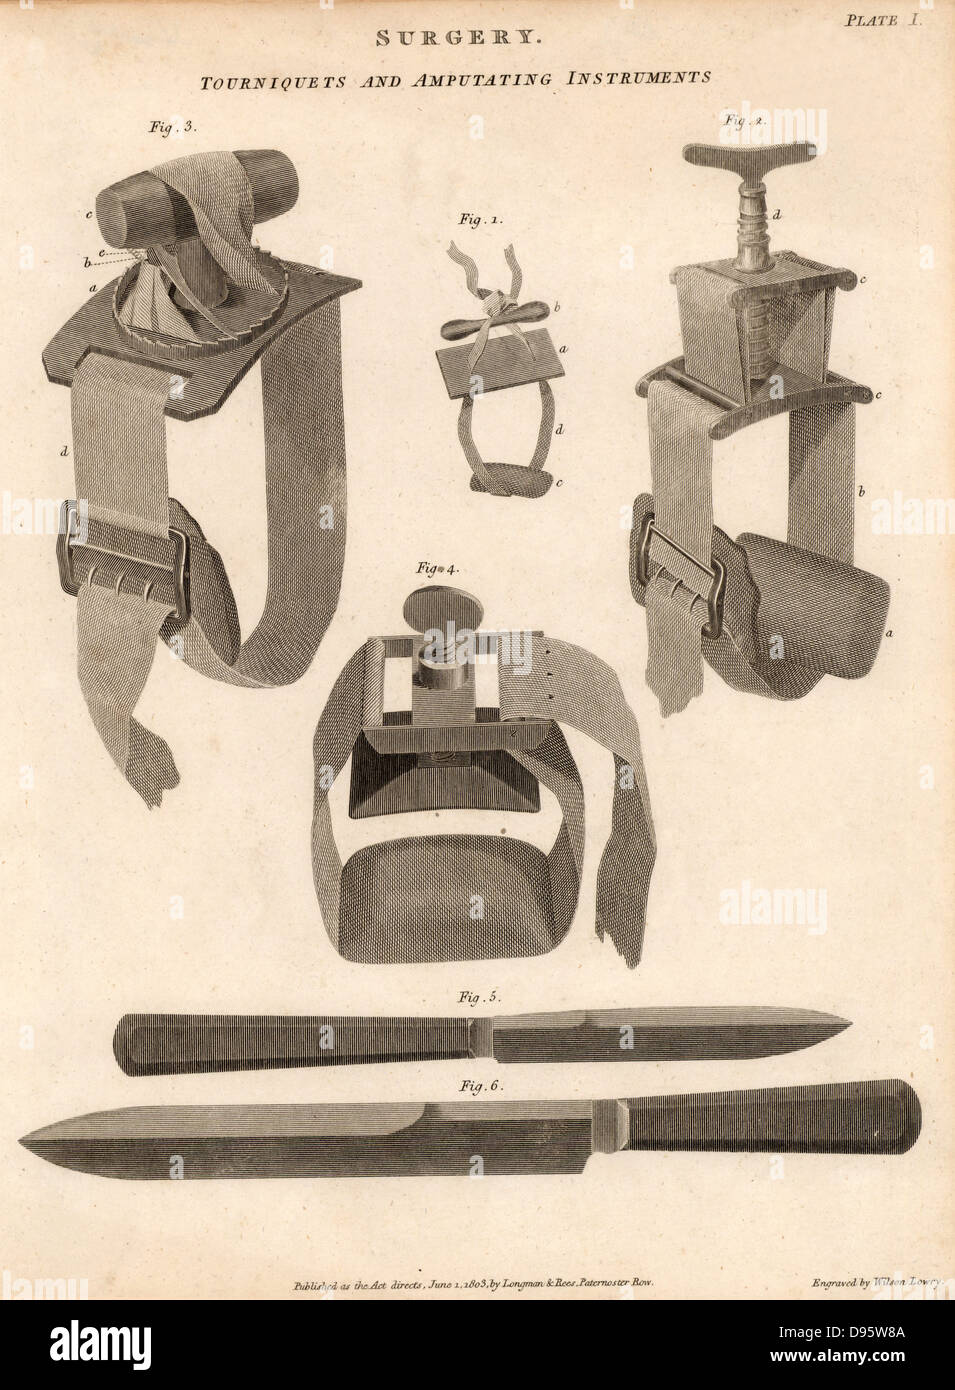 Knives and tourniquets used for amputation. The tourniquets not only stemmed the flow of blood, they also induced - Stock Image